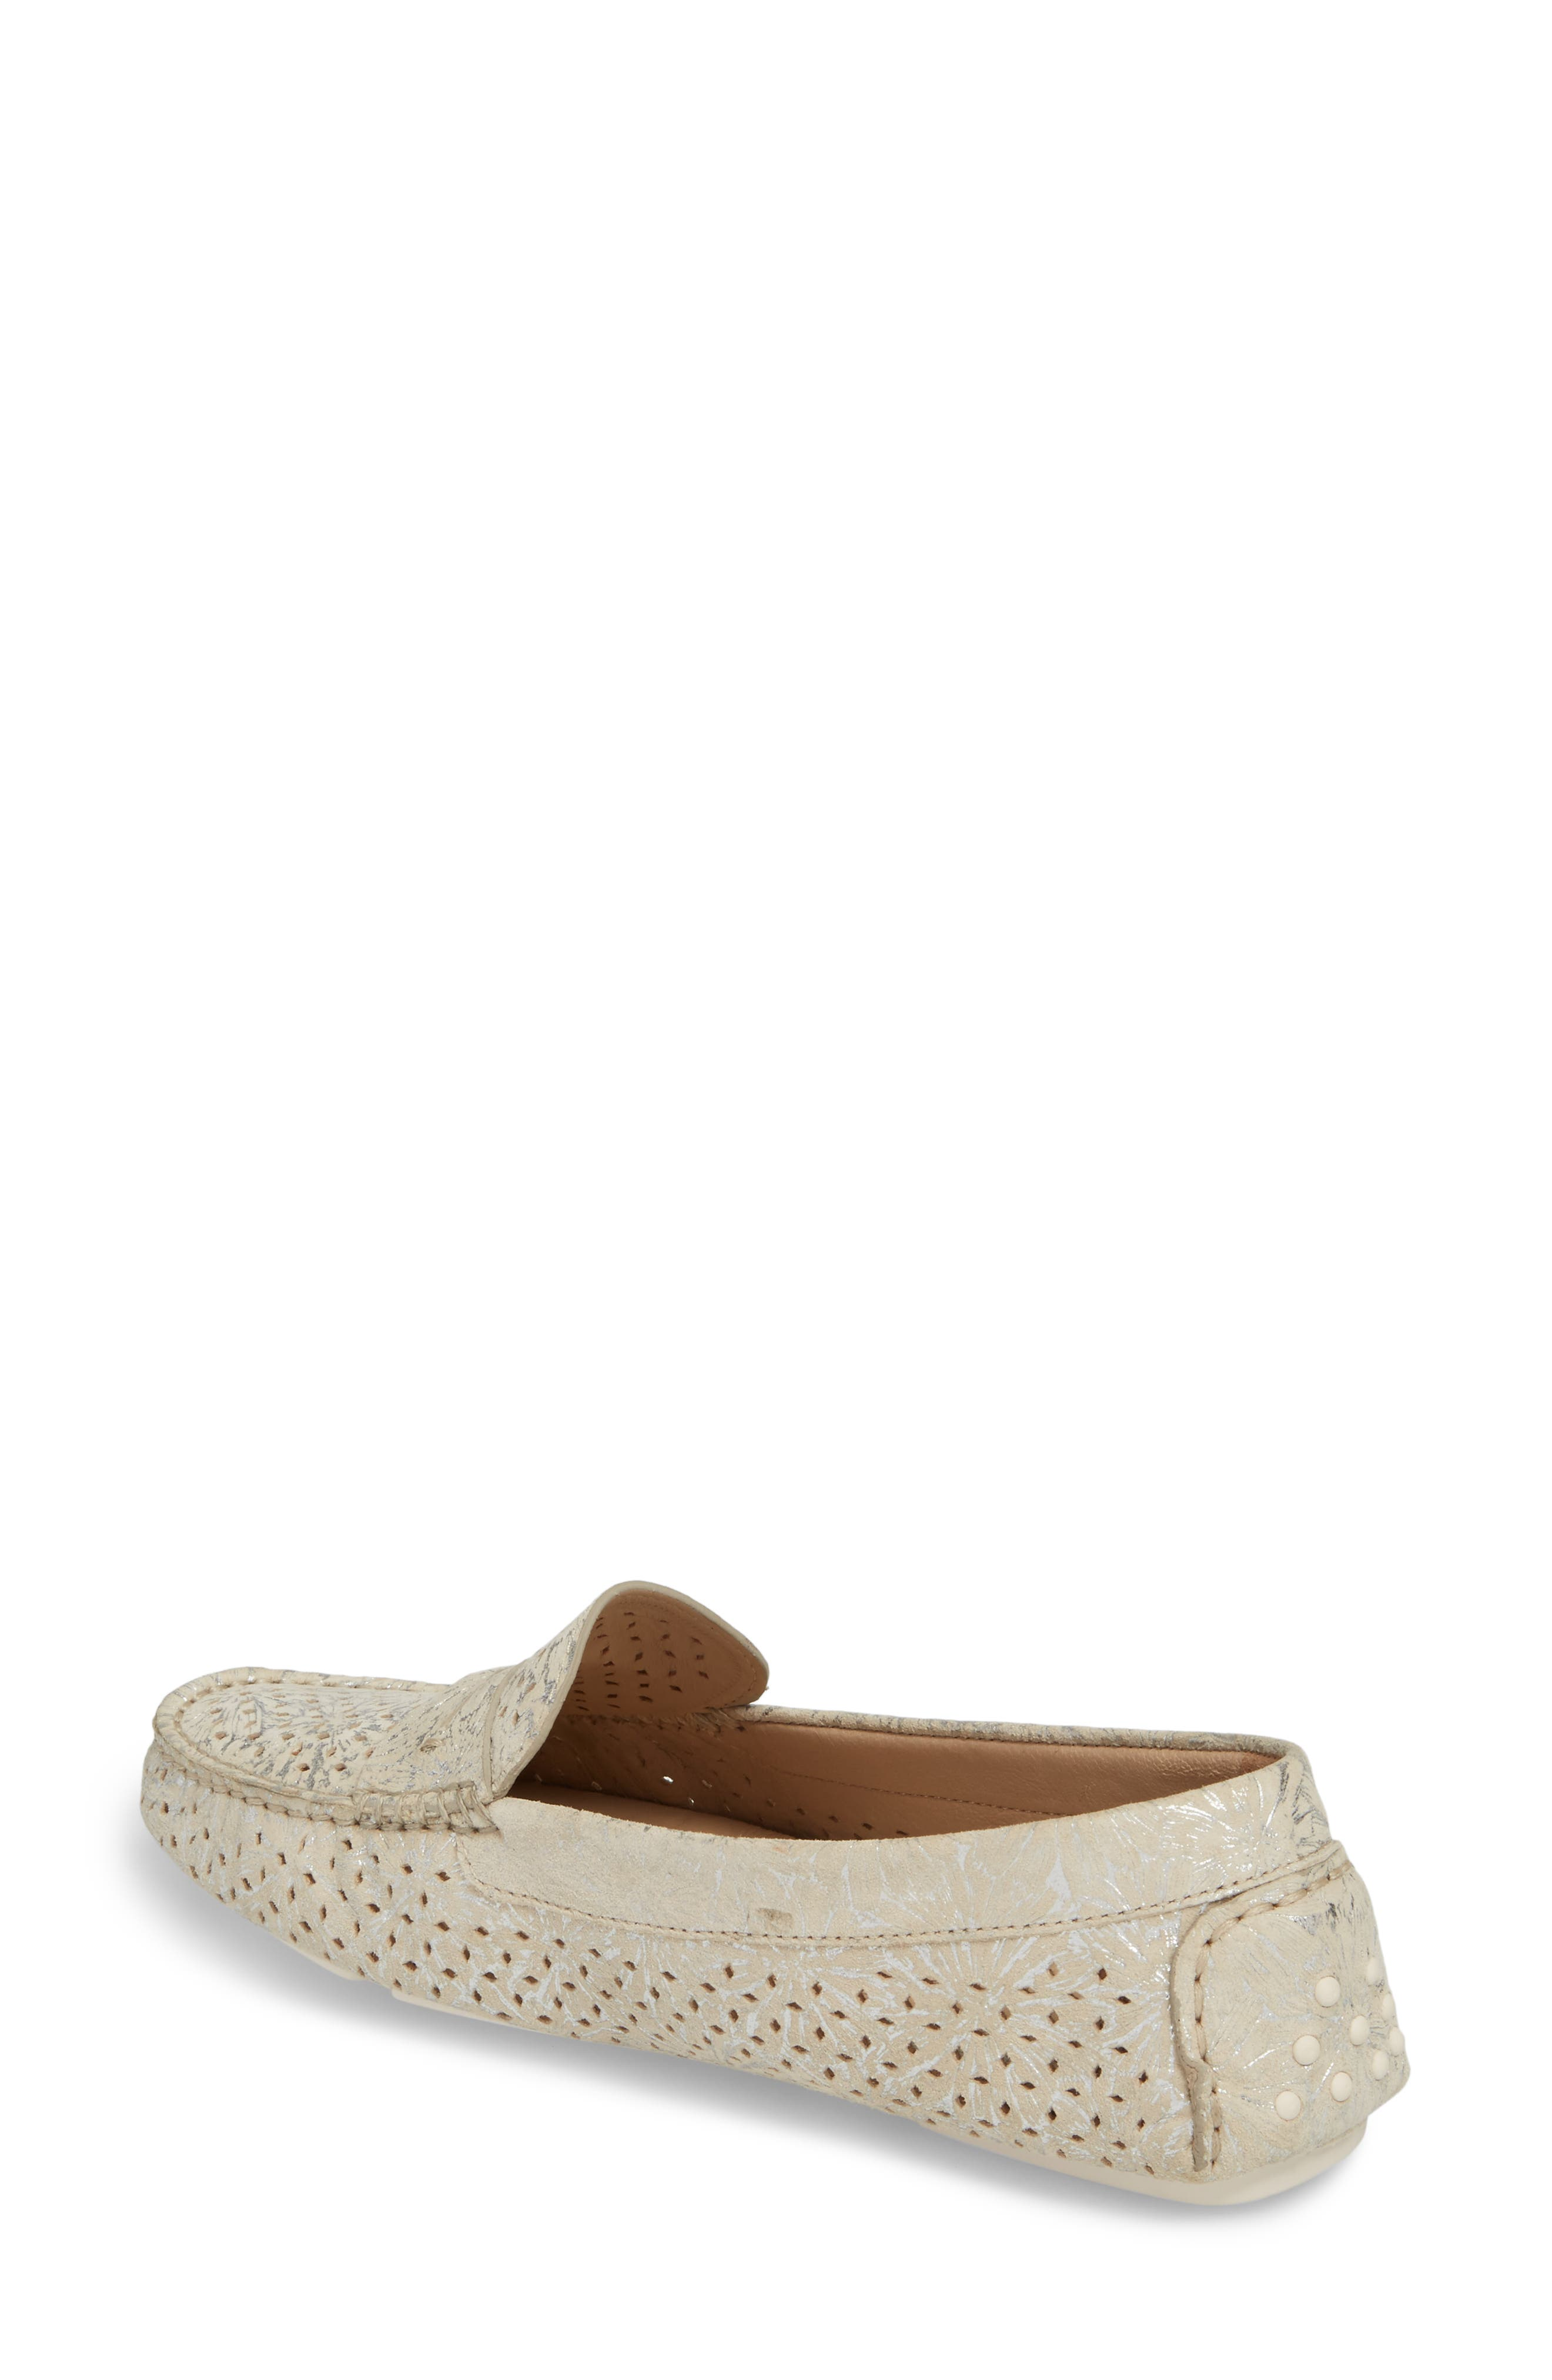 'Maggie' Penny Loafer,                             Alternate thumbnail 2, color,                             Cream Suede